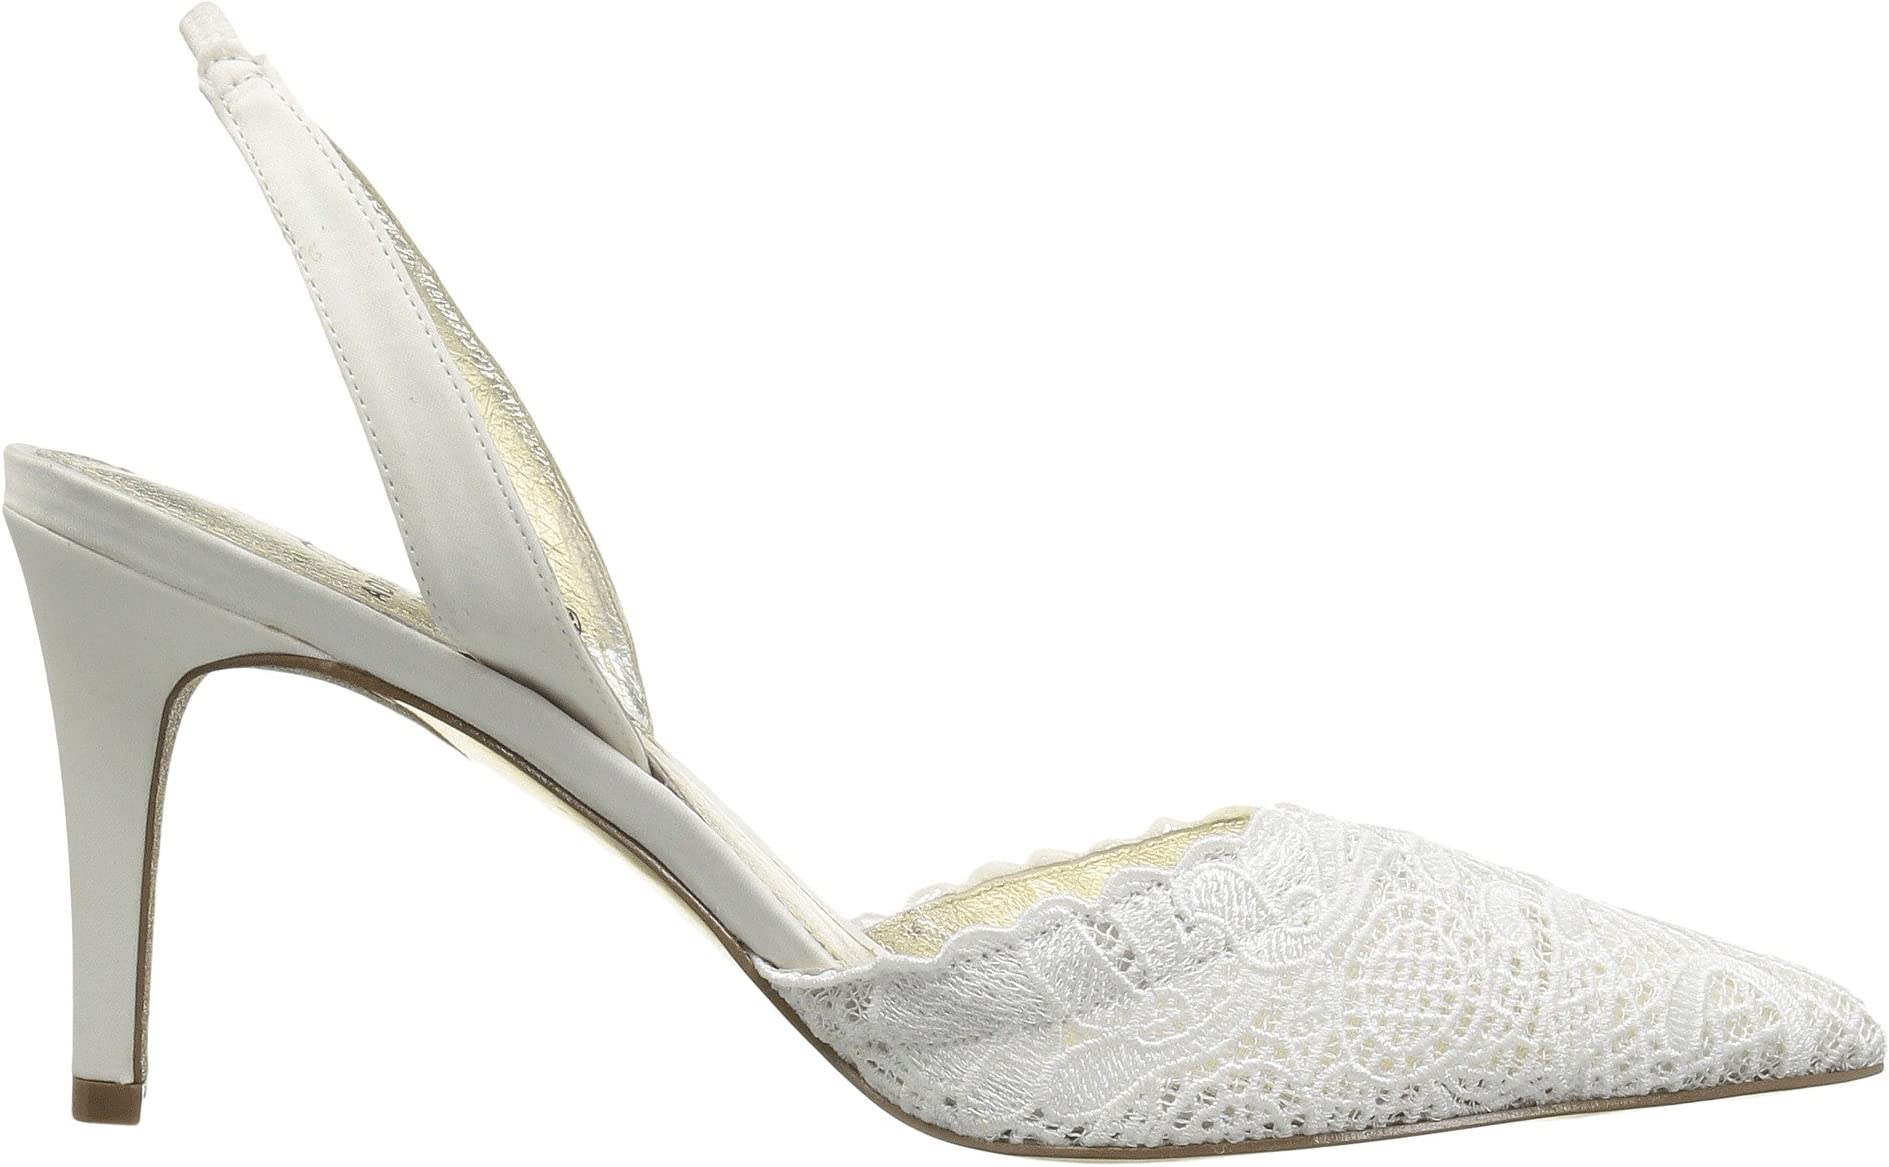 Adrianna Papell Hallie | Women's shoes | 2020 Newest